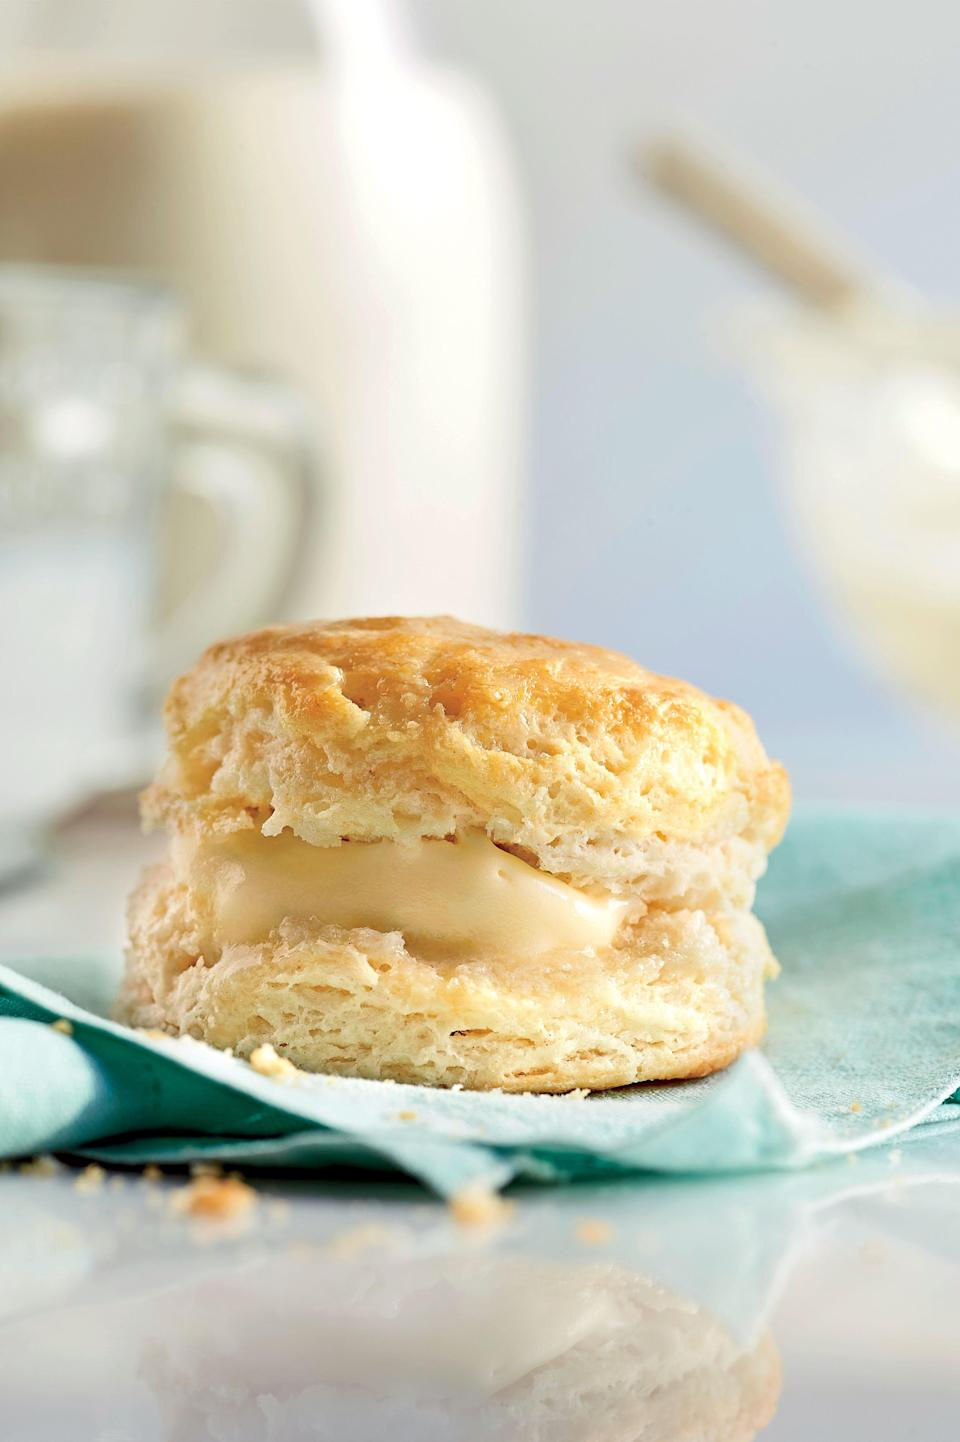 """<p><strong>Recipe: <a href=""""http://www.myrecipes.com/recipe/our-favorite-buttermilk-biscuit-50400000134850/"""" rel=""""nofollow noopener"""" target=""""_blank"""" data-ylk=""""slk:Our Favorite Buttermilk Biscuit"""" class=""""link rapid-noclick-resp"""">Our Favorite Buttermilk Biscuit</a></strong></p> <p>Our Test Kitchen baked hundreds of biscuits until we landed on our all-time favorite, no-fail recipe that will impress new cooks and old pros alike.</p> <p><strong>Watch: <a href=""""http://www.southernliving.com/food/how-to/perfect-buttermilk-biscuit-video"""" rel=""""nofollow noopener"""" target=""""_blank"""" data-ylk=""""slk:Our Best Ever Buttermilk Biscuit"""" class=""""link rapid-noclick-resp"""">Our Best Ever Buttermilk Biscuit</a></strong></p>"""